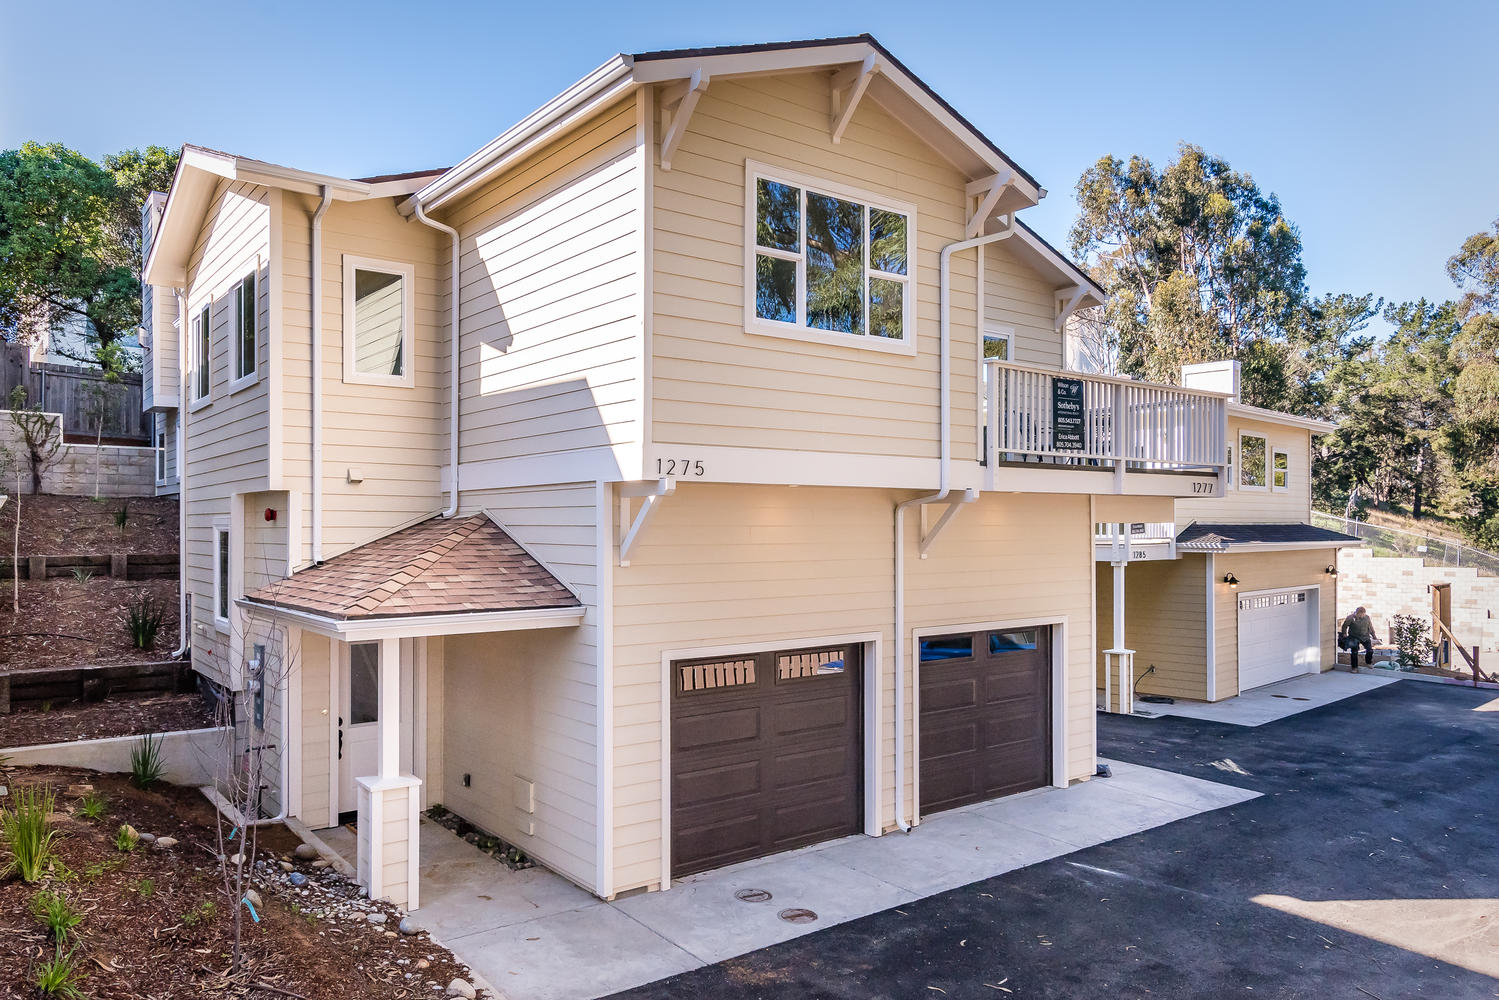 Single Family Home for Sale at New Construction Coastal Home with Guest Home 1275-1277 Main Street Morro Bay, California 93442 United States